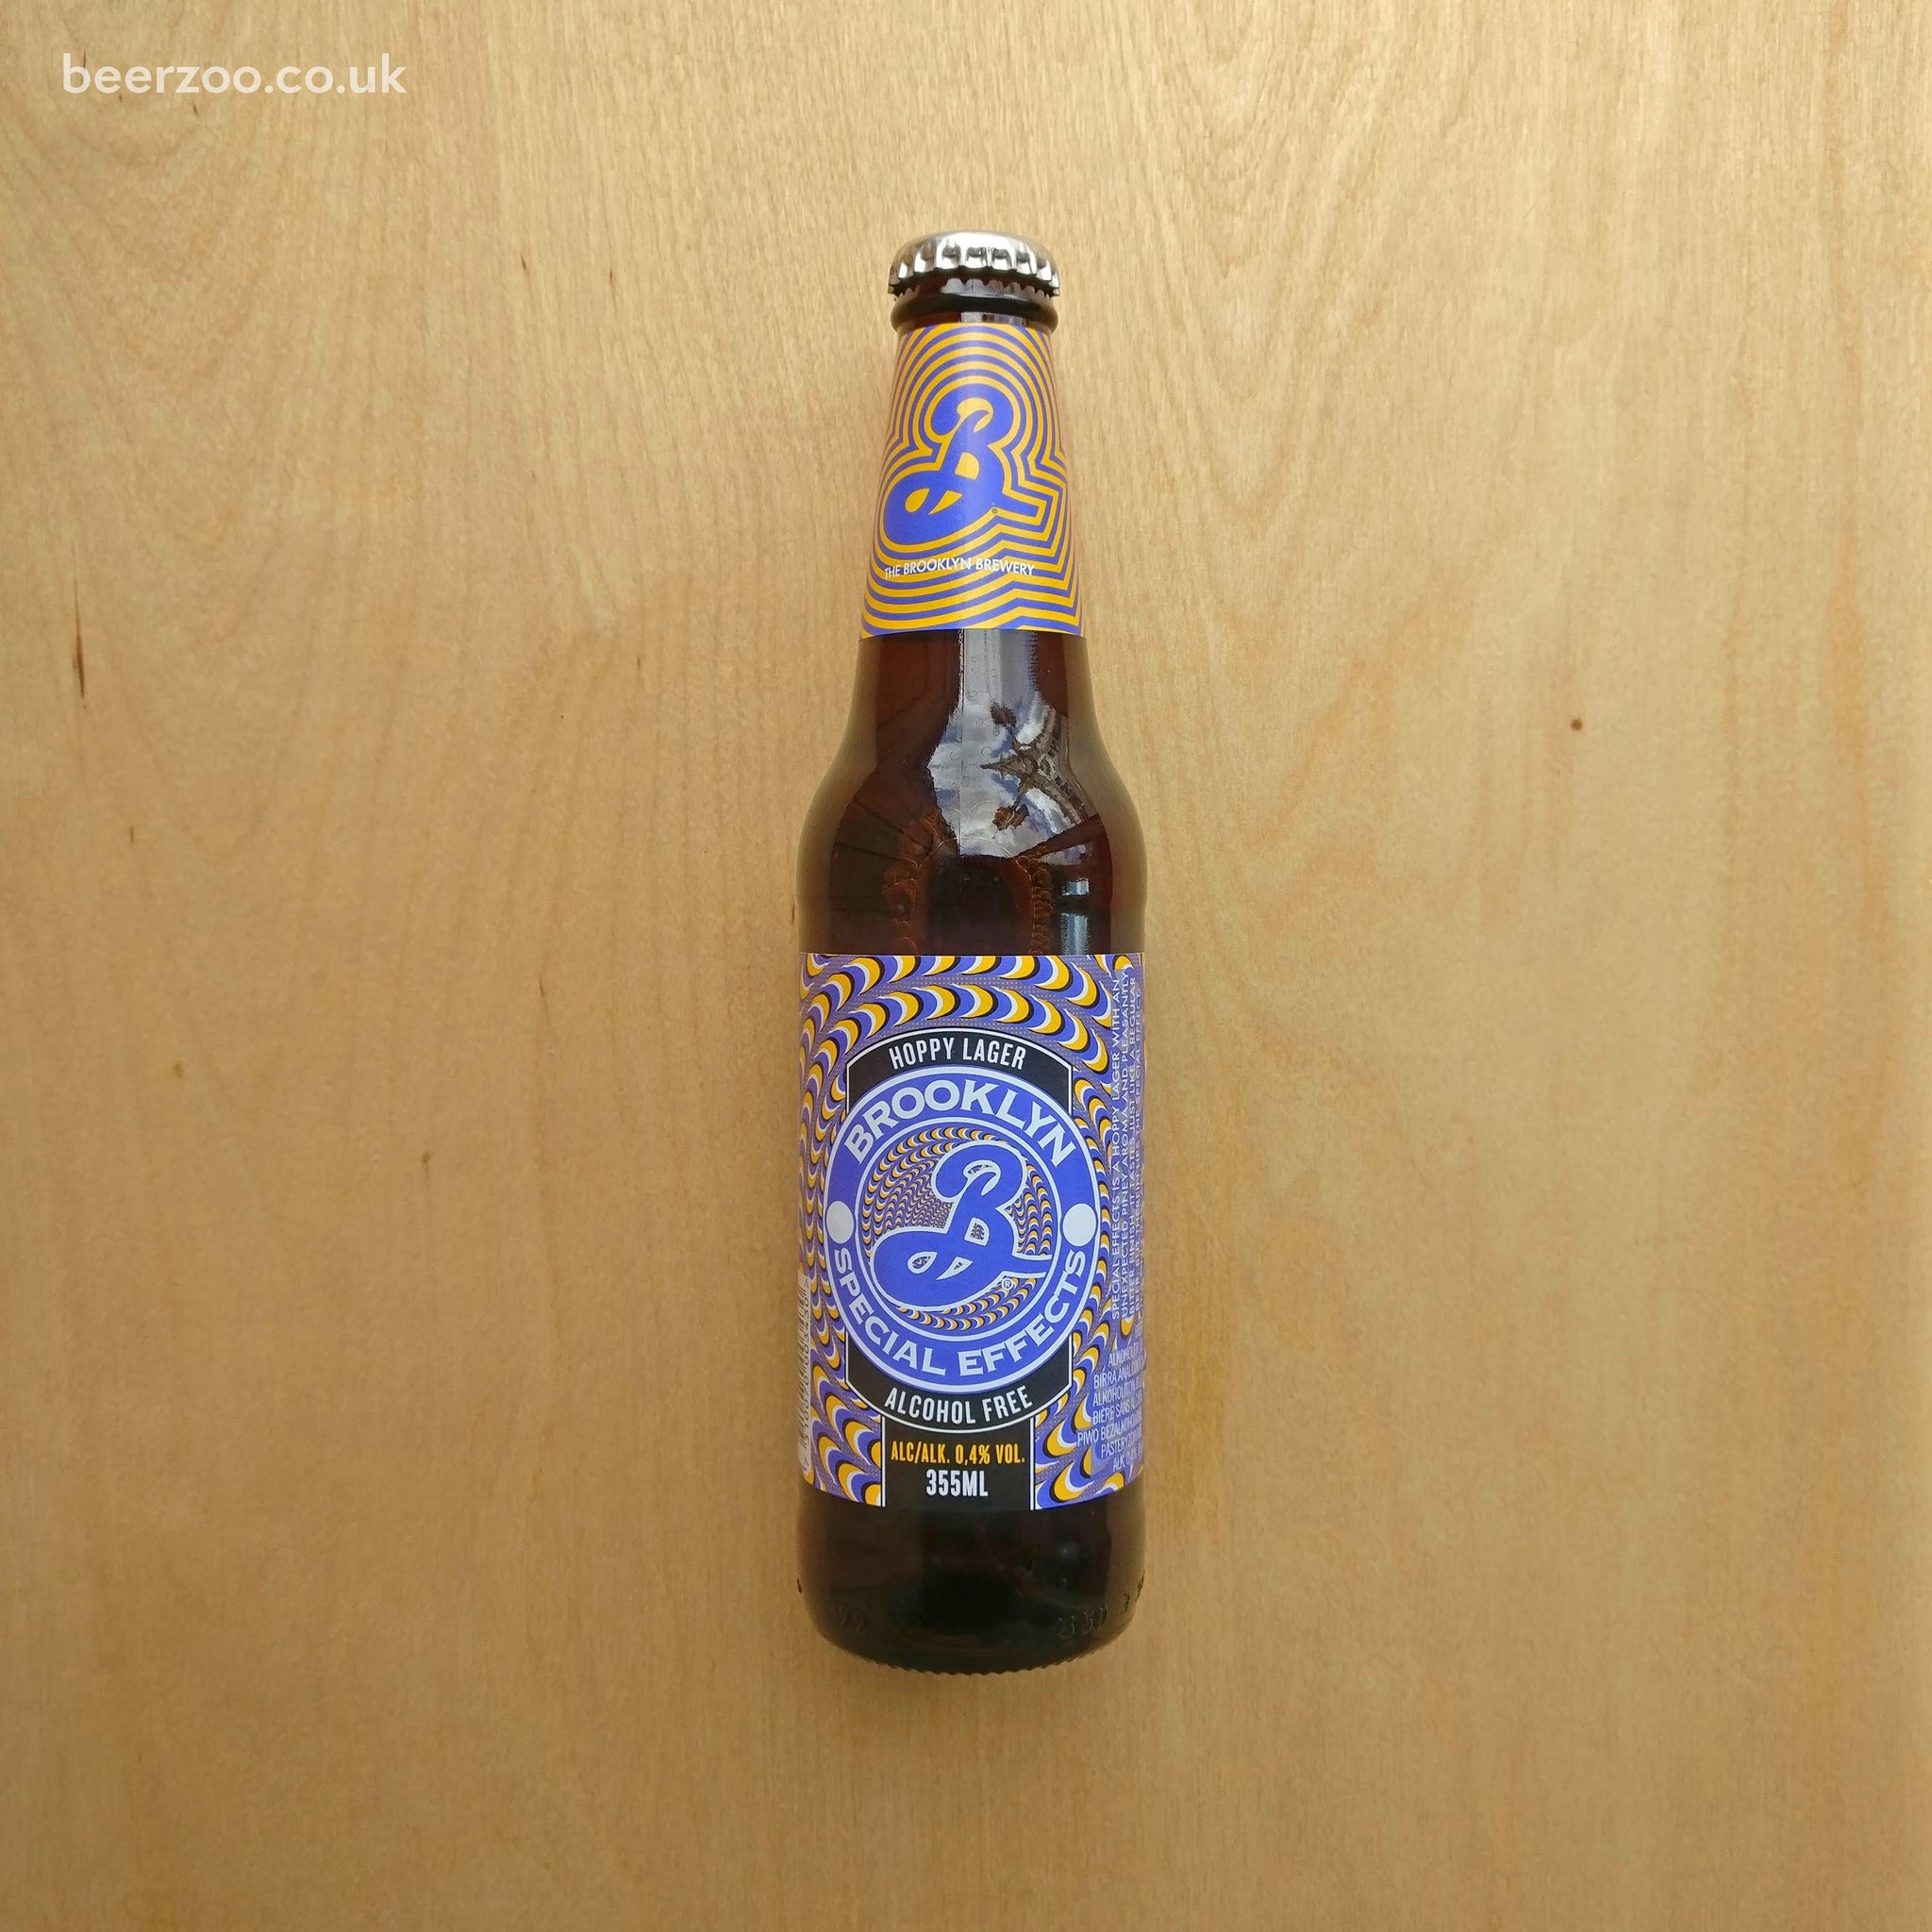 Brooklyn - Special Effects 0.4% (355ml)